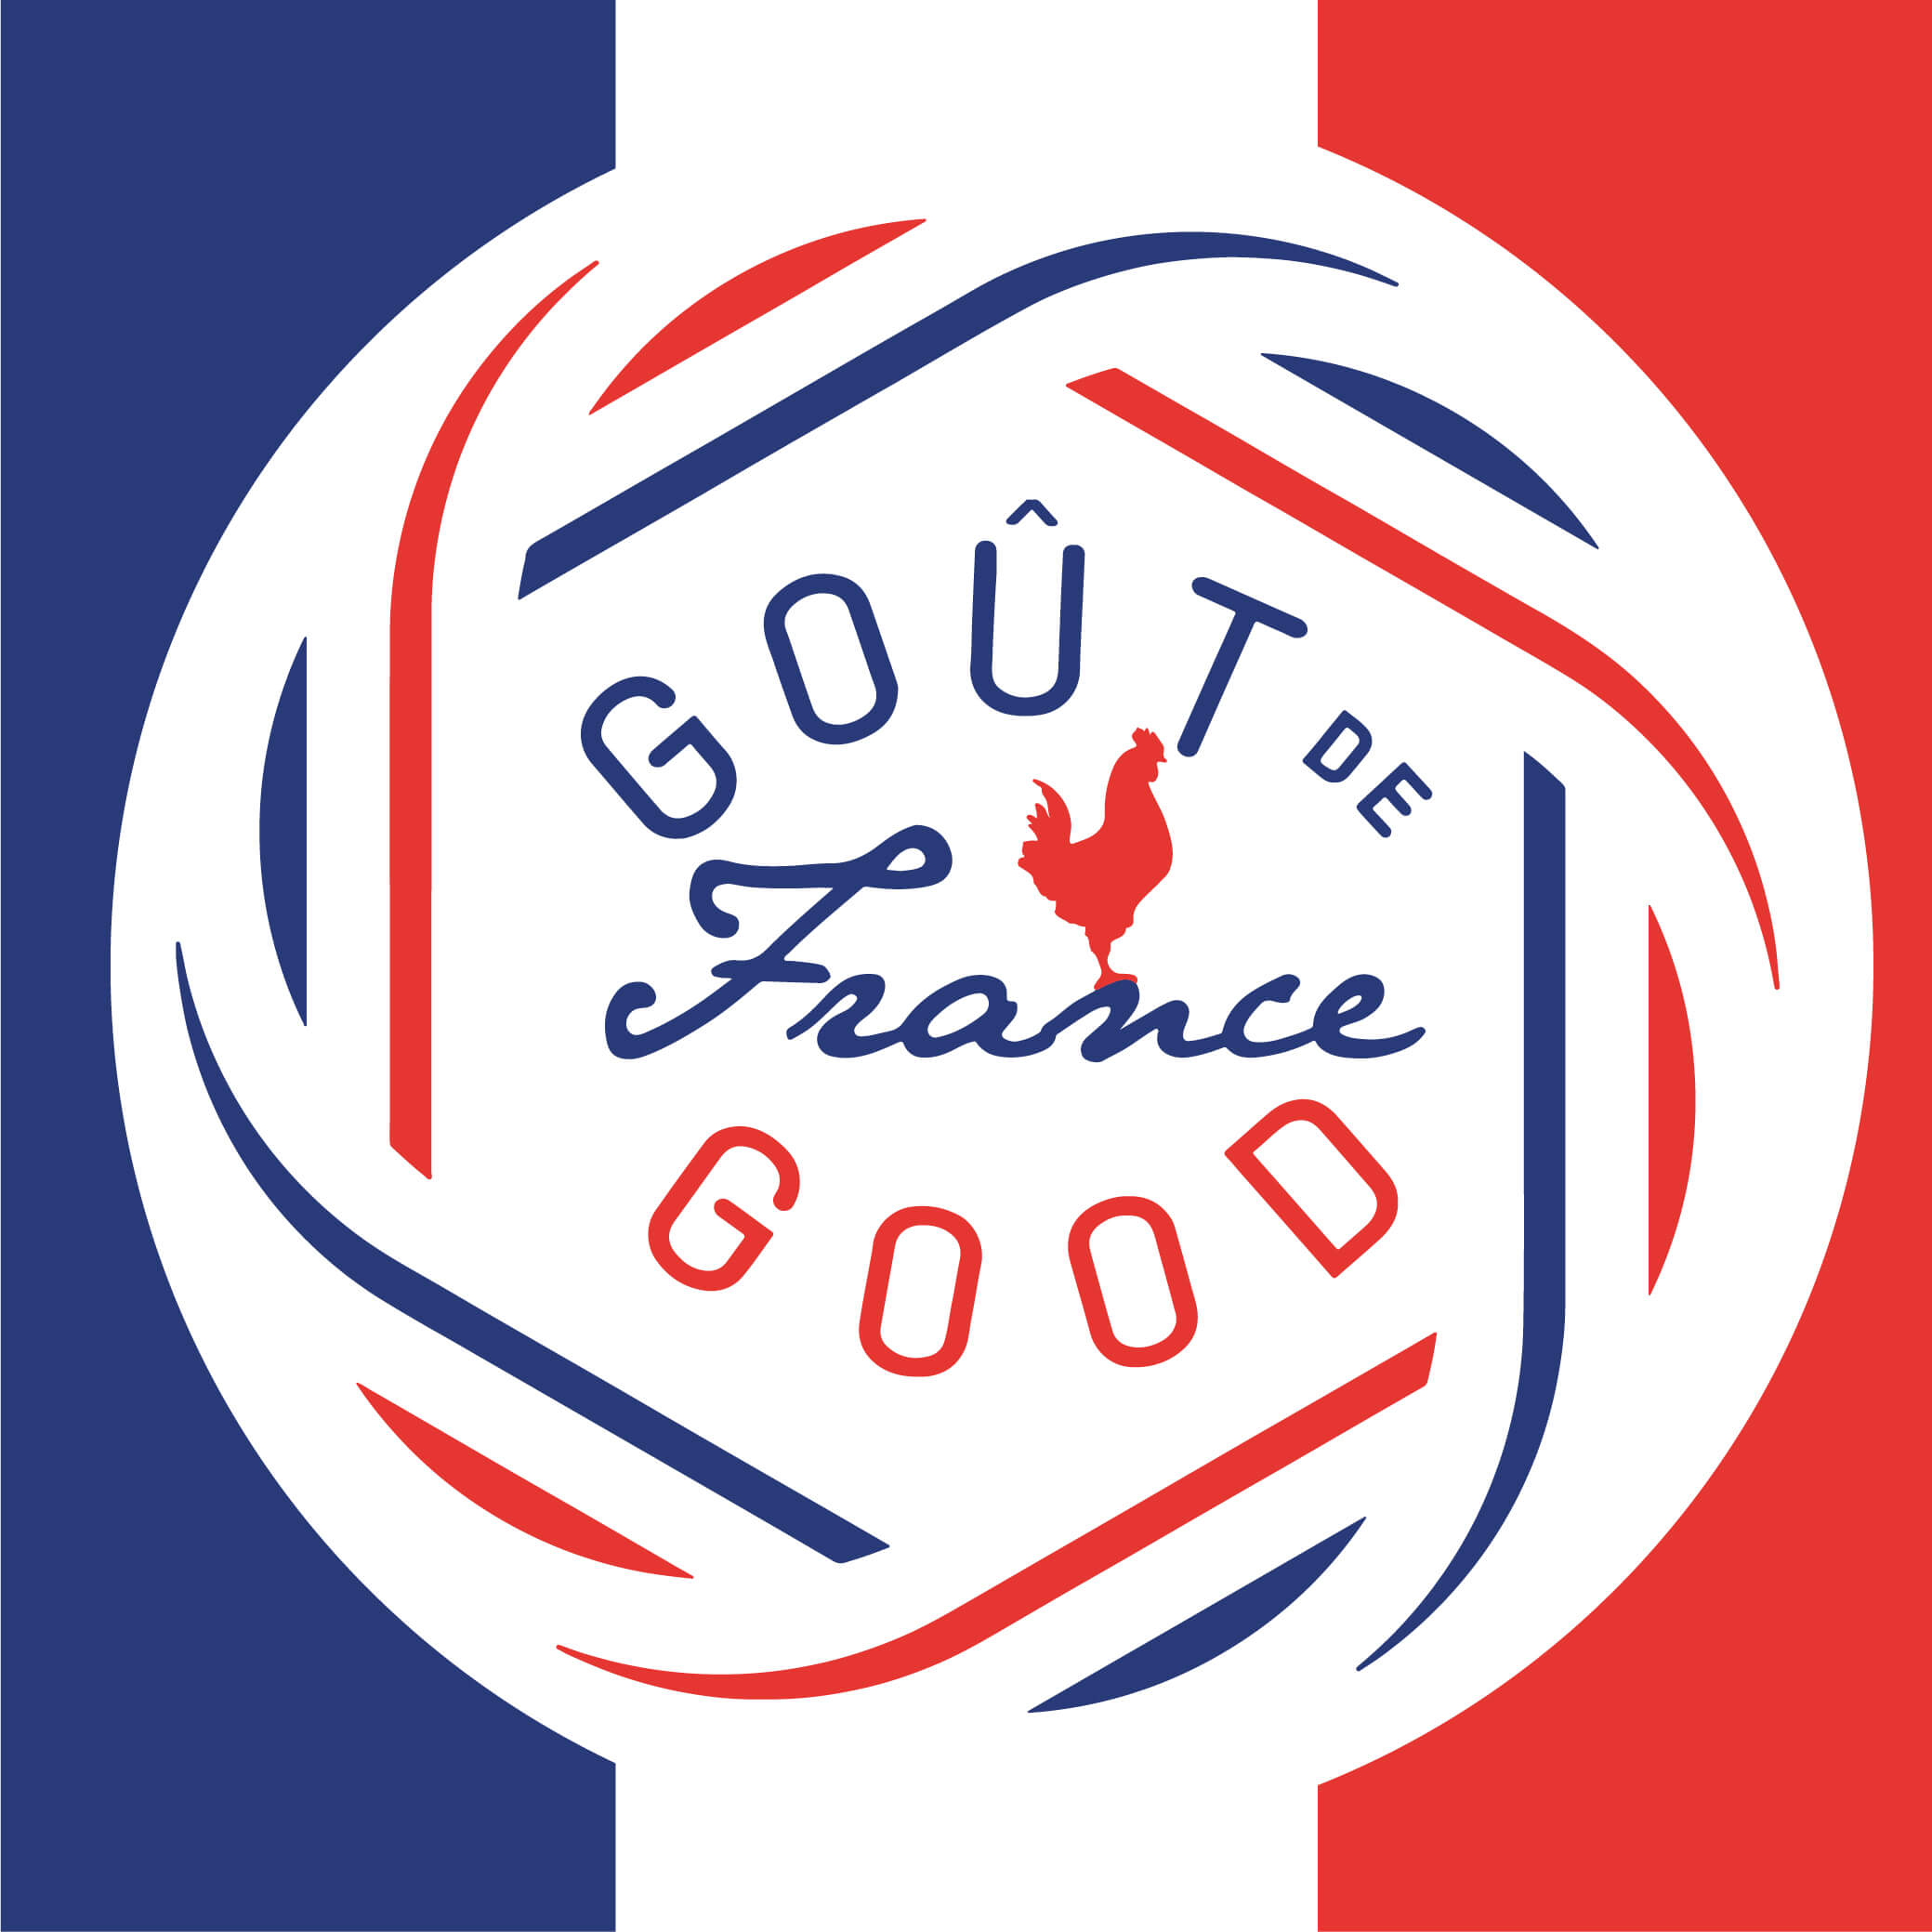 Let's celebrate the French gastronomy